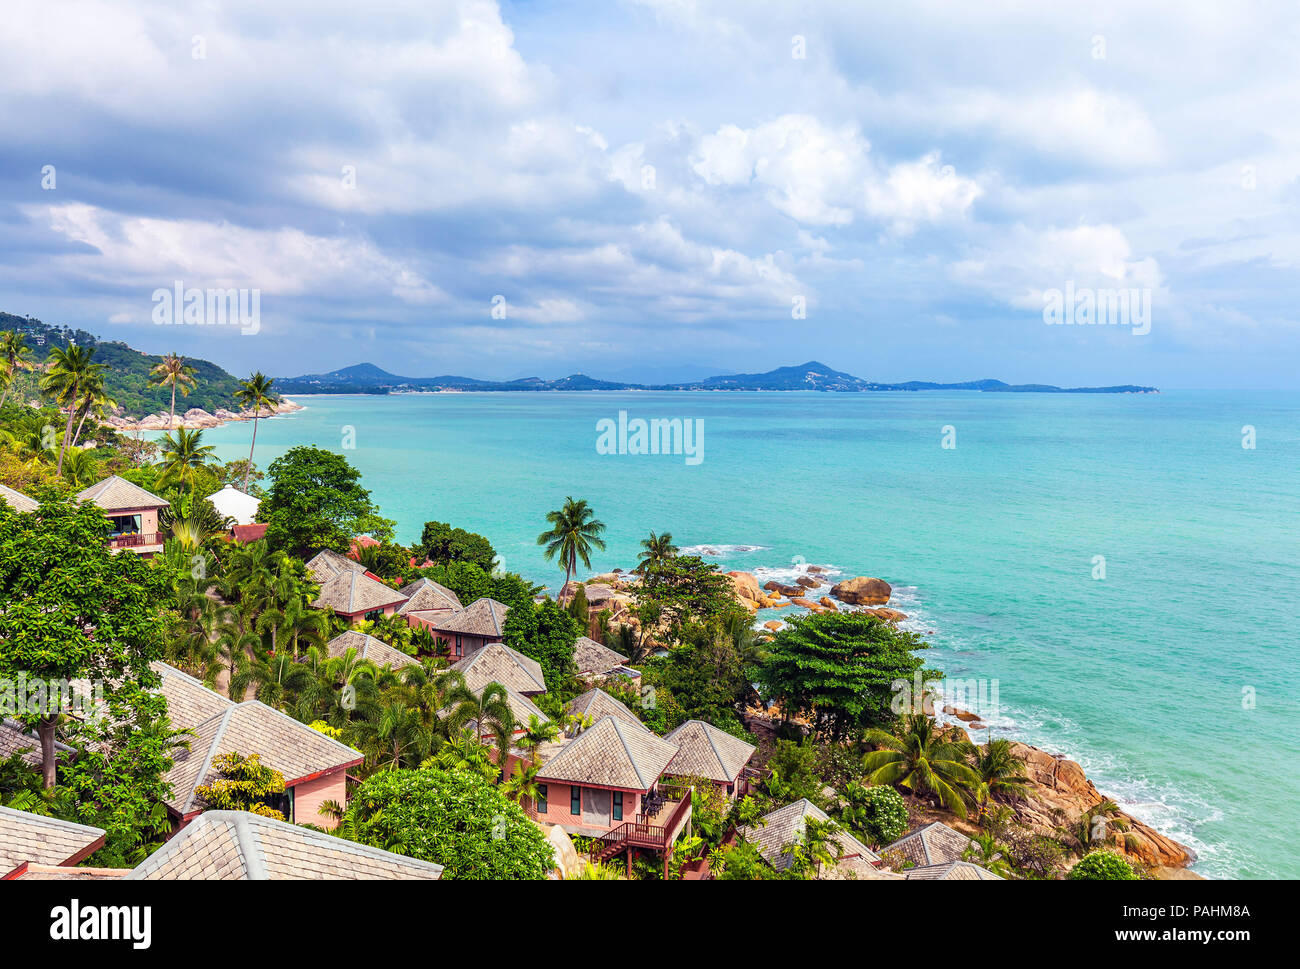 Beautiful views of the coast of Koh Samui in Thailand. - Stock Image